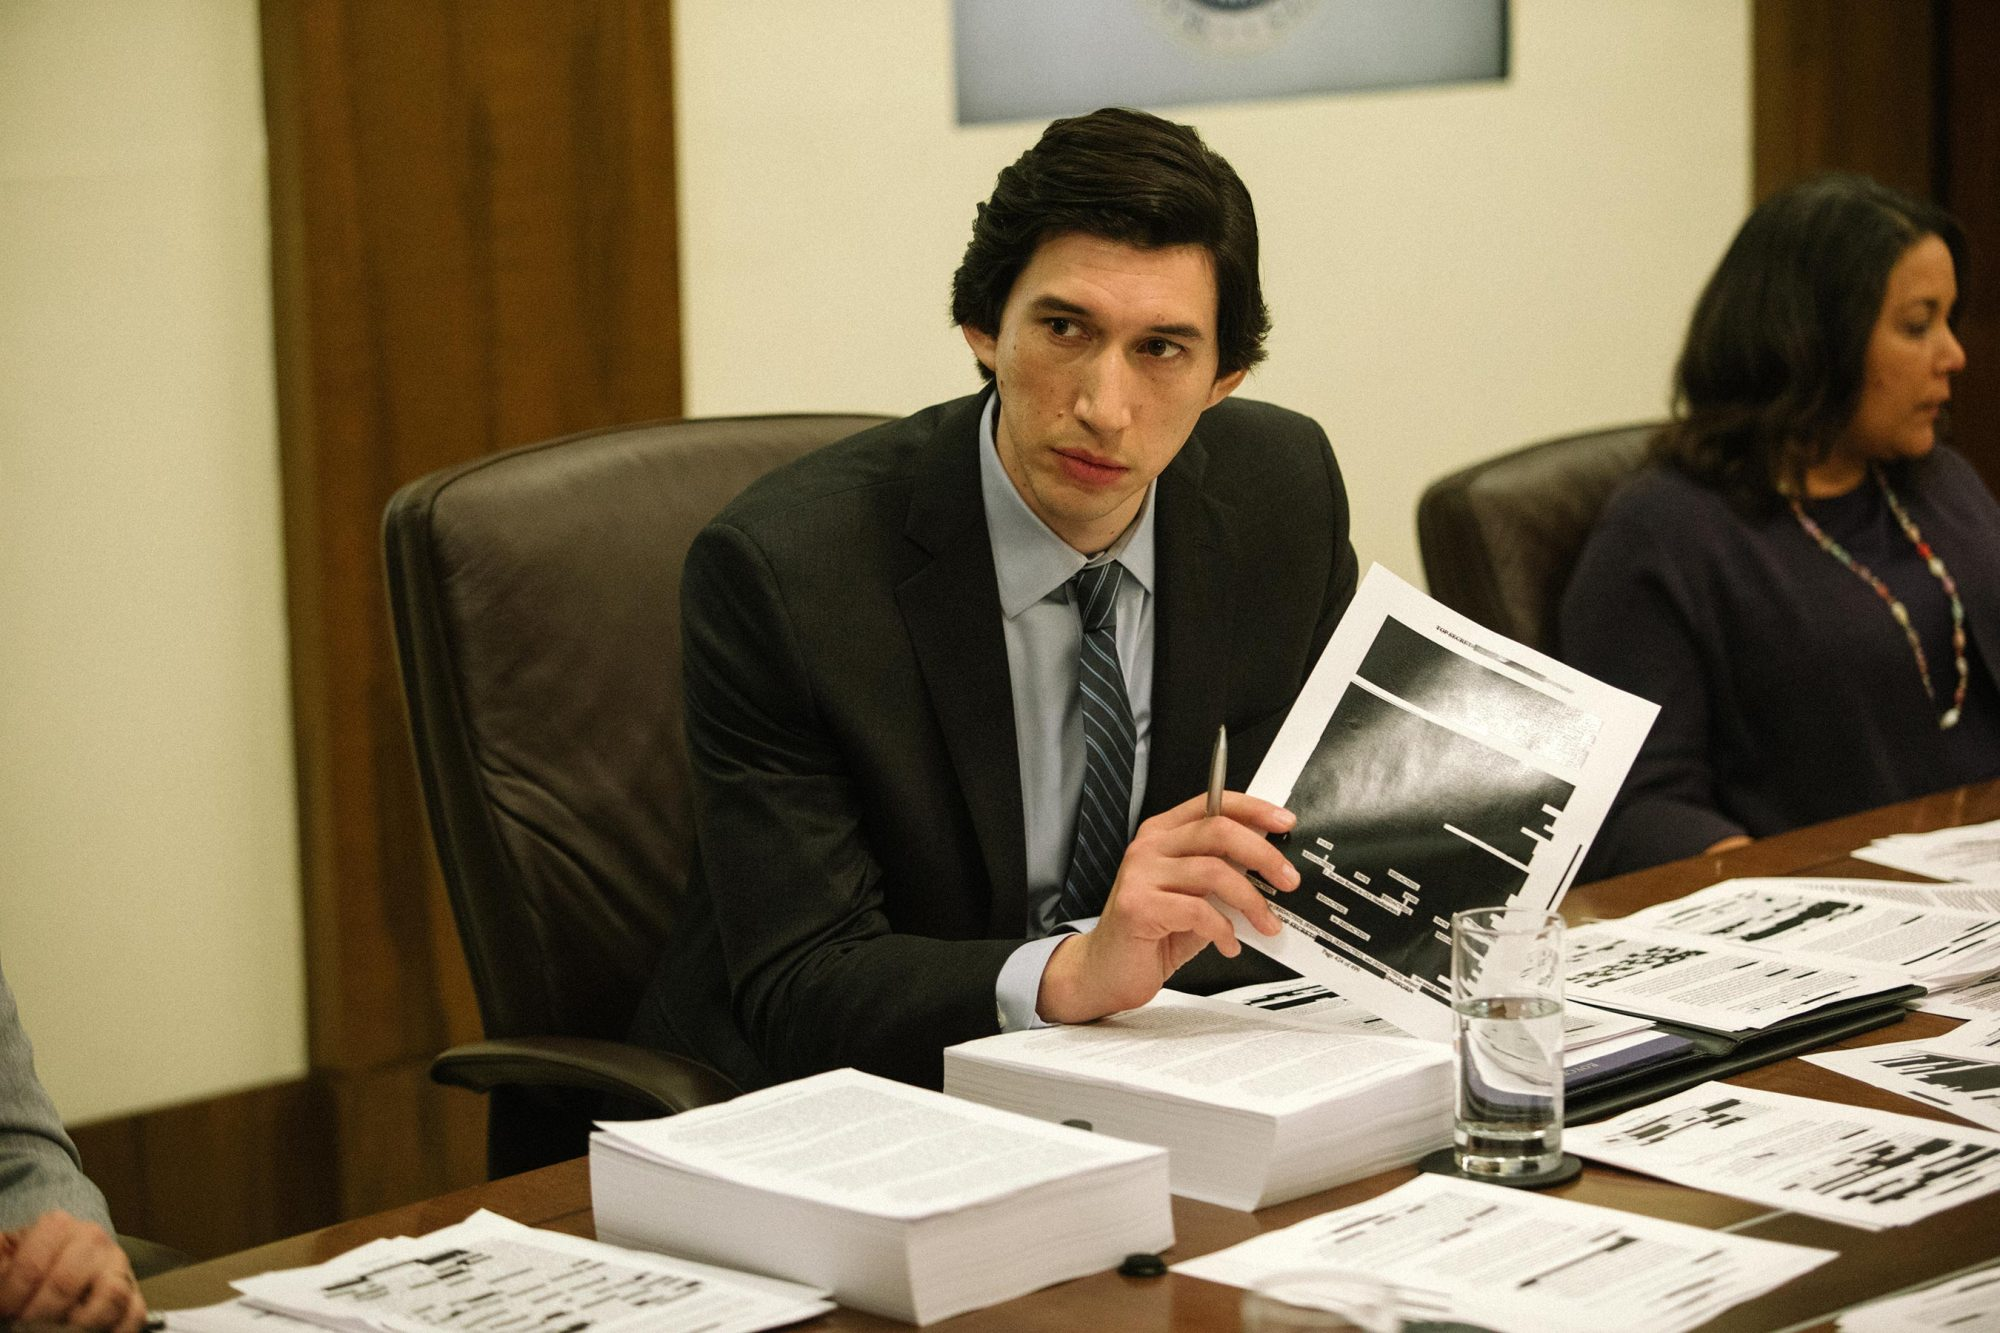 The Report - Still 1